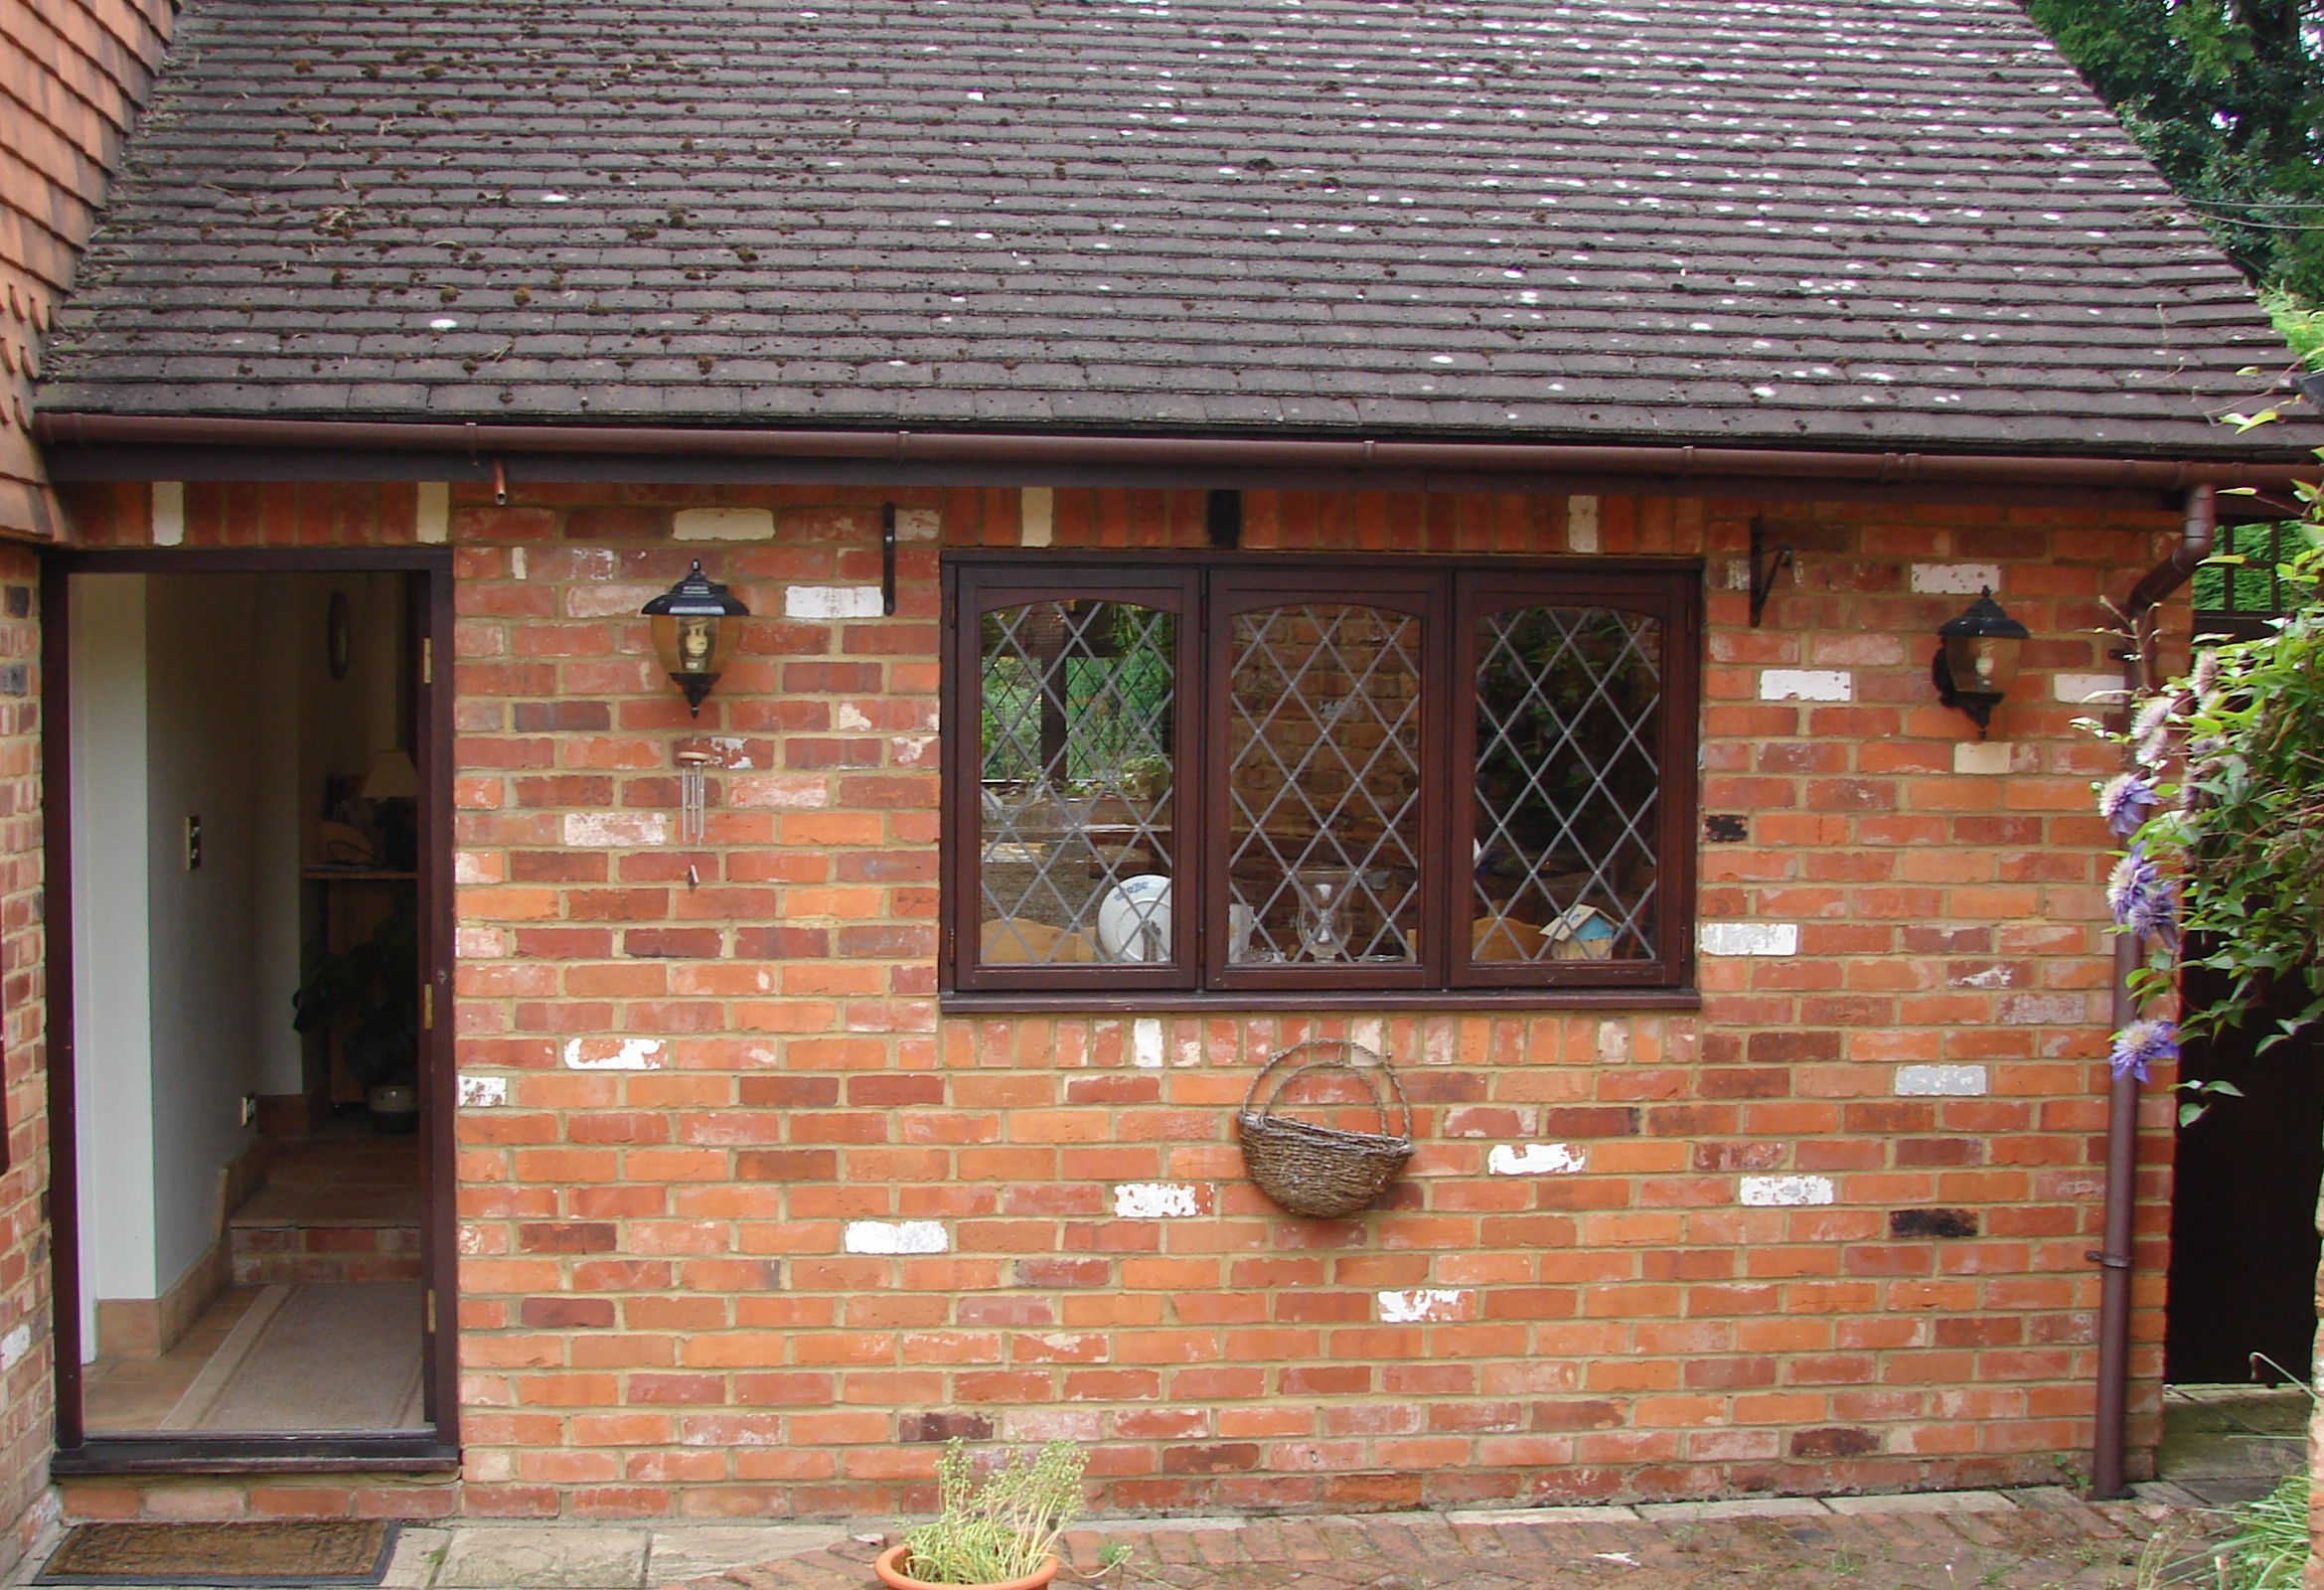 Brick house familyhaikus for Brick house design blog